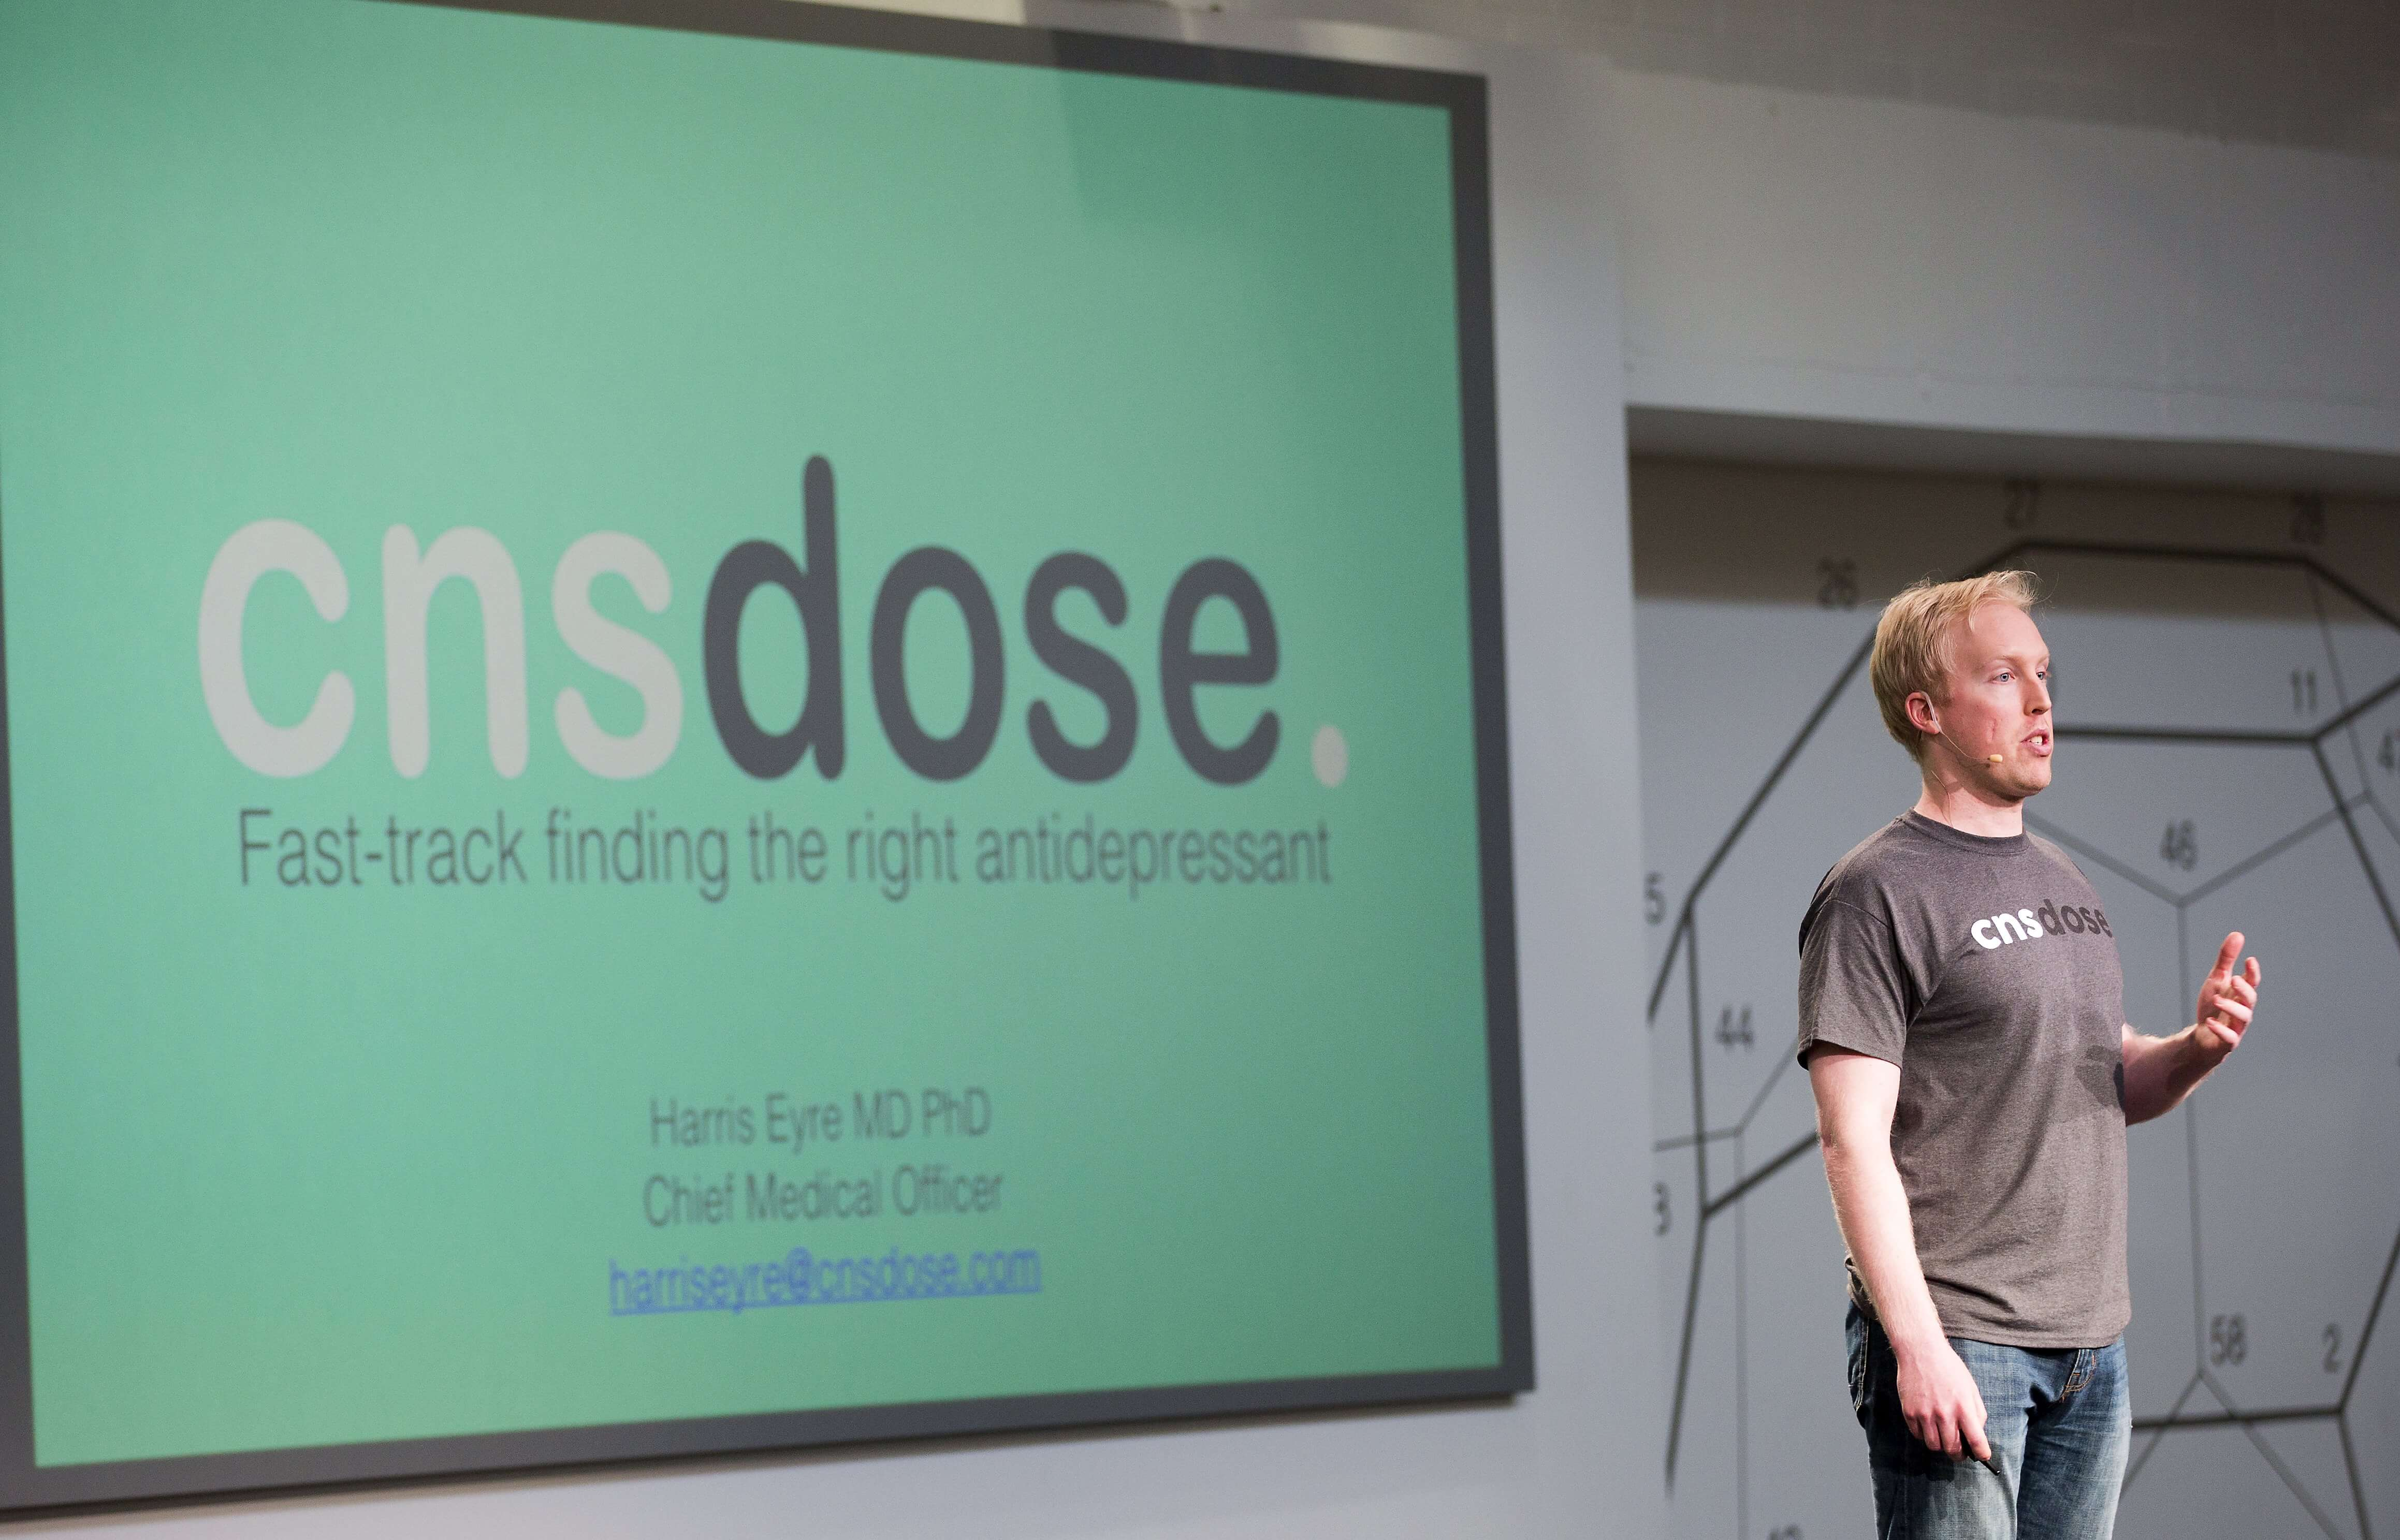 CNSDose uses advanced genetic technology to fast-track finding the right antidepressant and dose. Genetically guided prescribing via CNSDose results in a 2.5 times greater likelihood of remission, which means faster recovery, reducing suffering and cutting costs that result from trial-and-error prescribing.